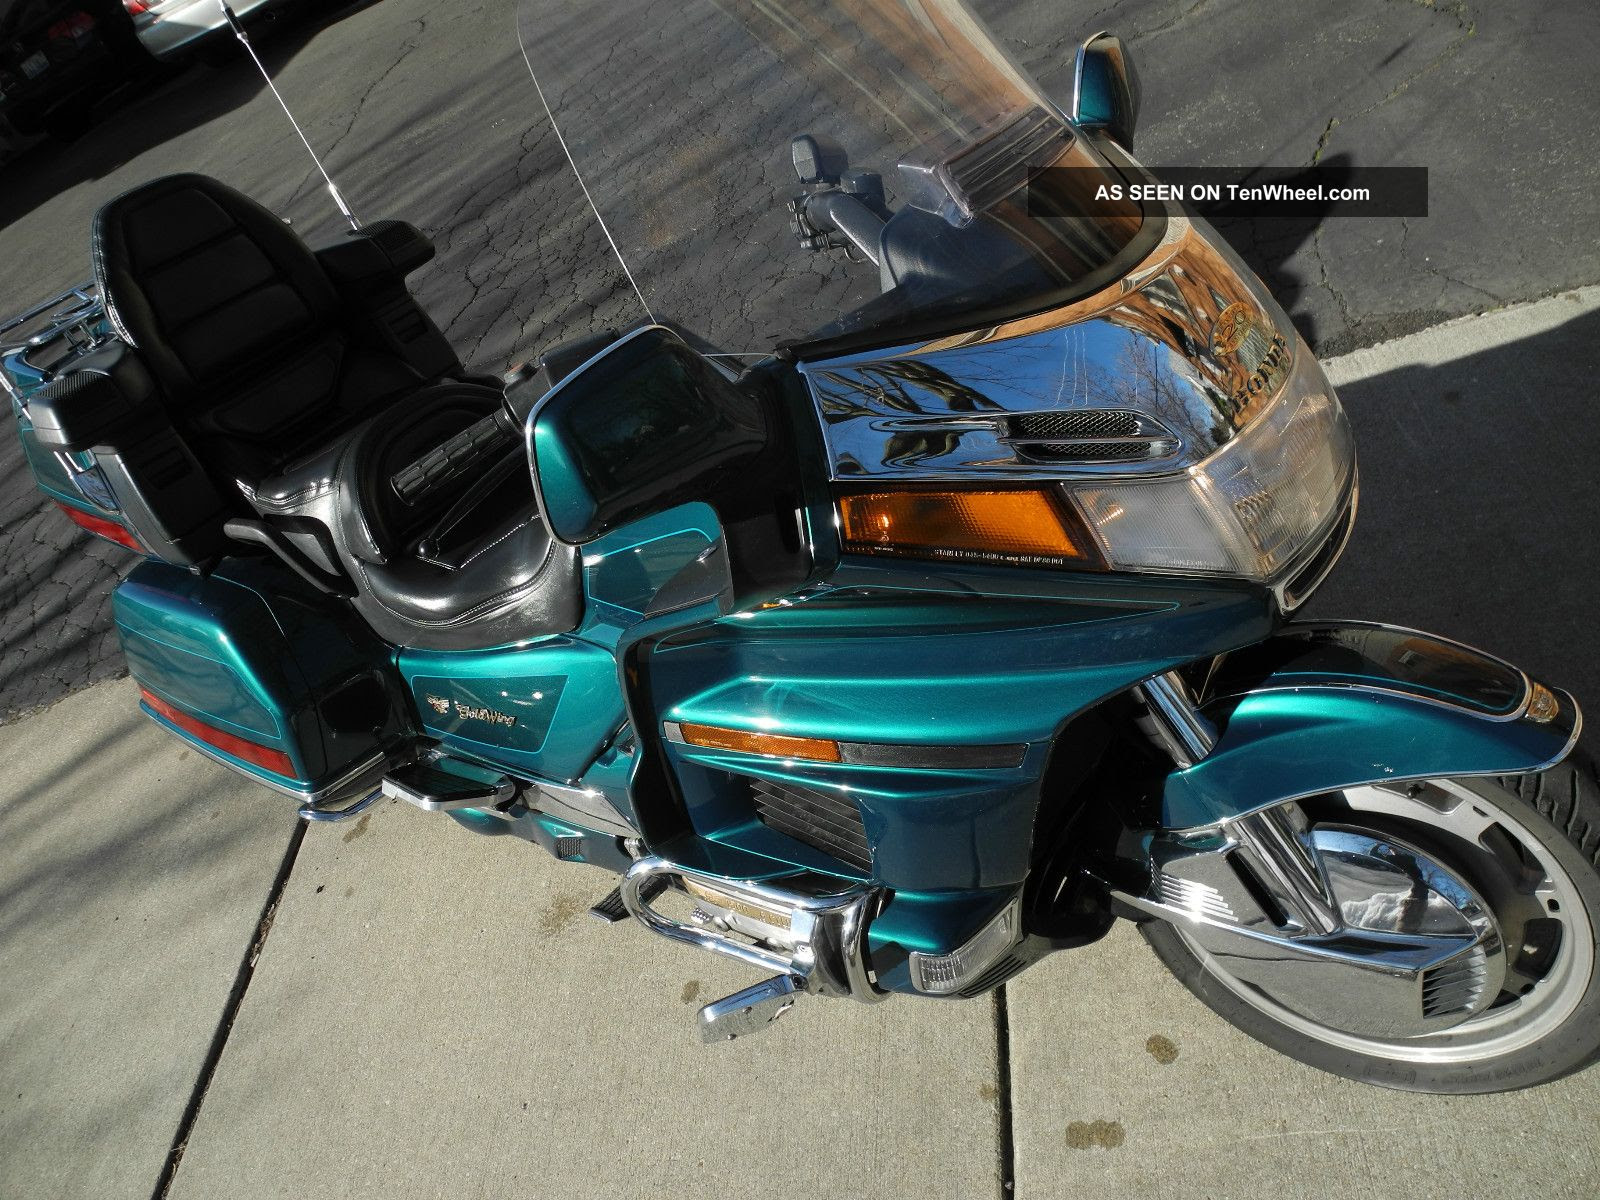 1995 Honda Goldwing Wiring Diagram